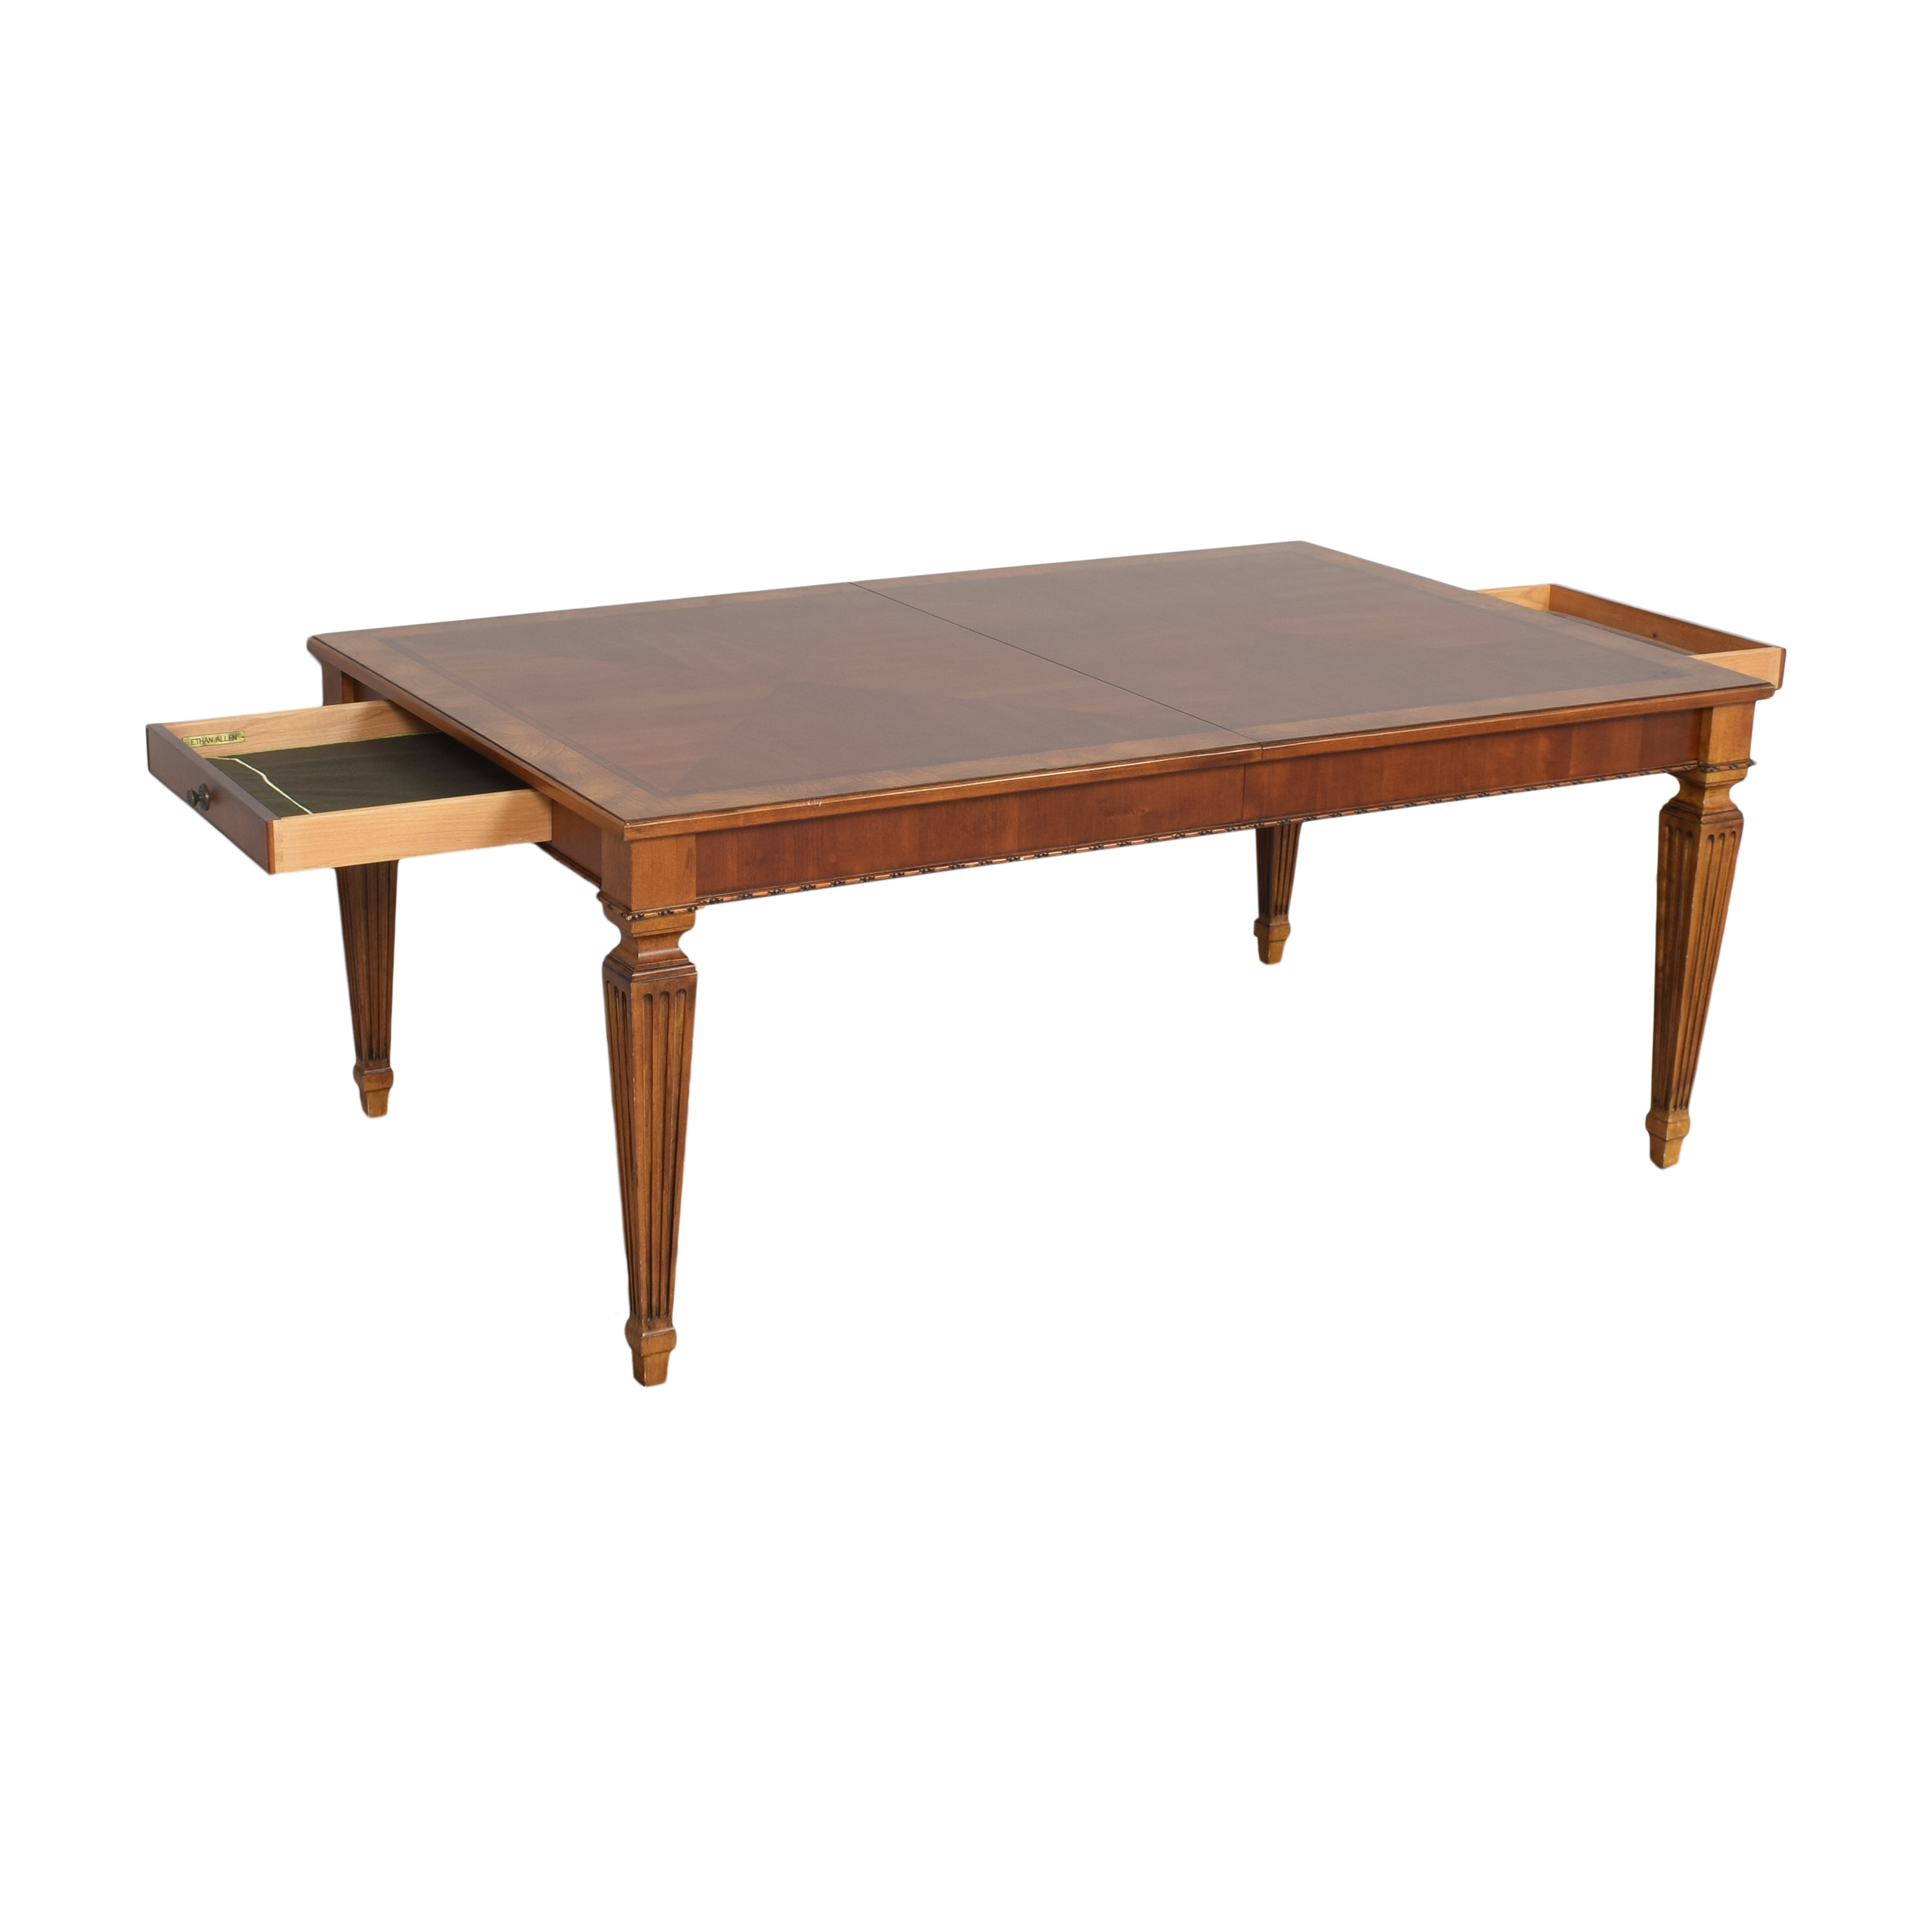 Ethan Allen Goodwin Extendable Dining Table / Tables